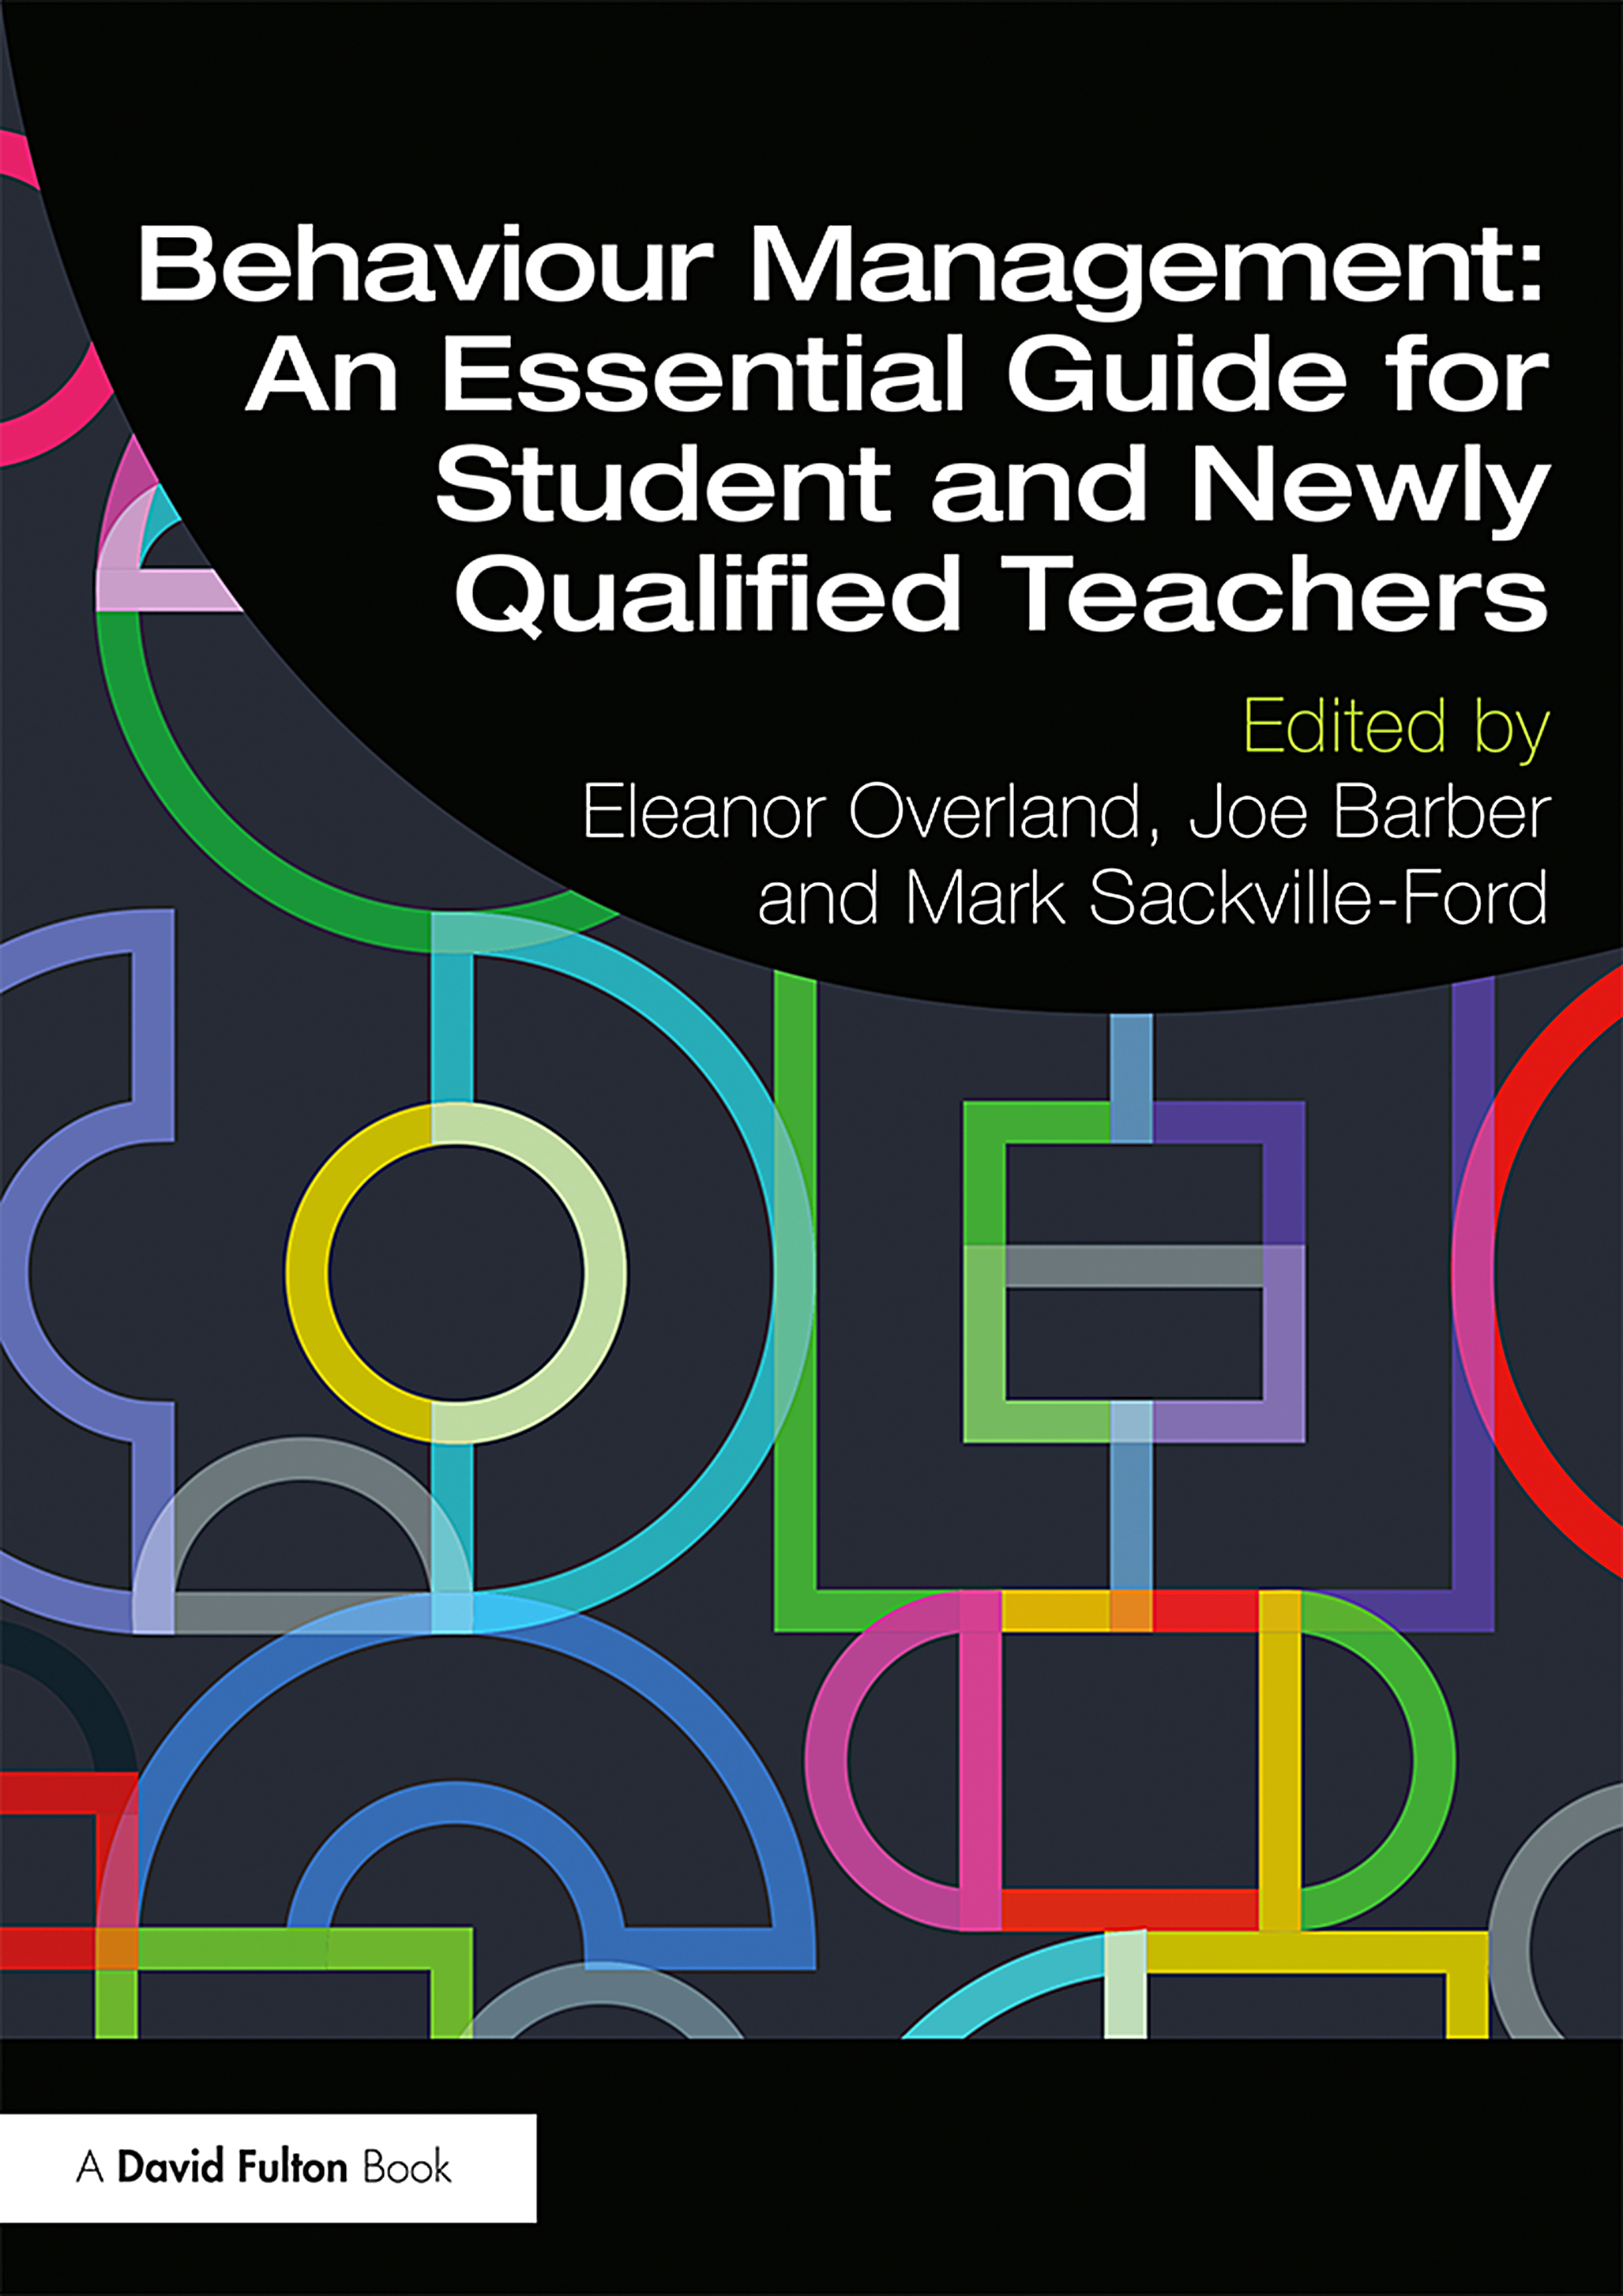 Behaviour Management: An Essential Guide for Student and Newly Qualified Teachers